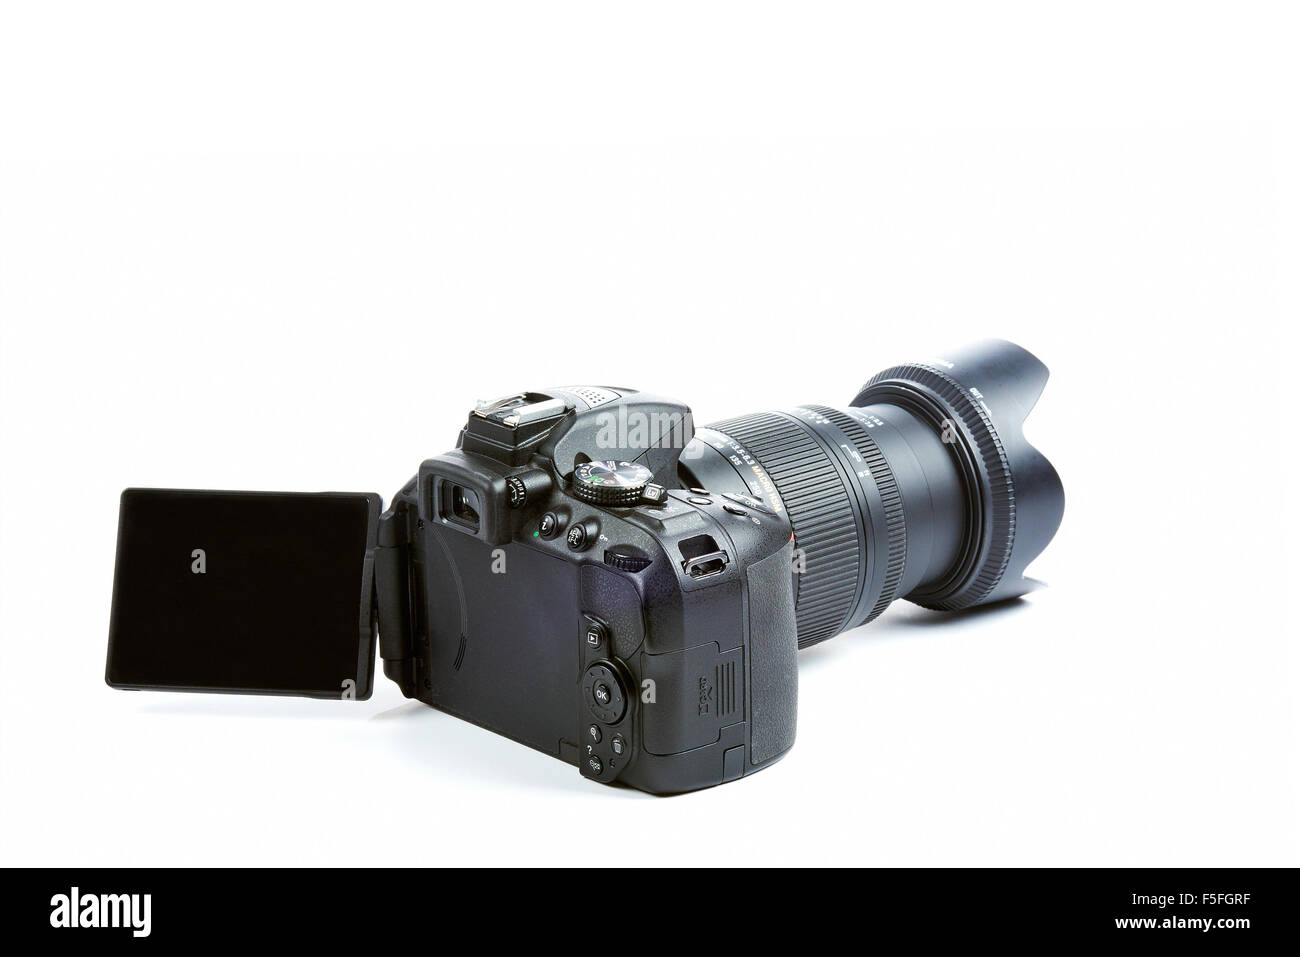 Nikon D5300 DSLR Camera with Zoom Sigma 18-250 mm OS HSM Macro Lens isolated on white background - Stock Image